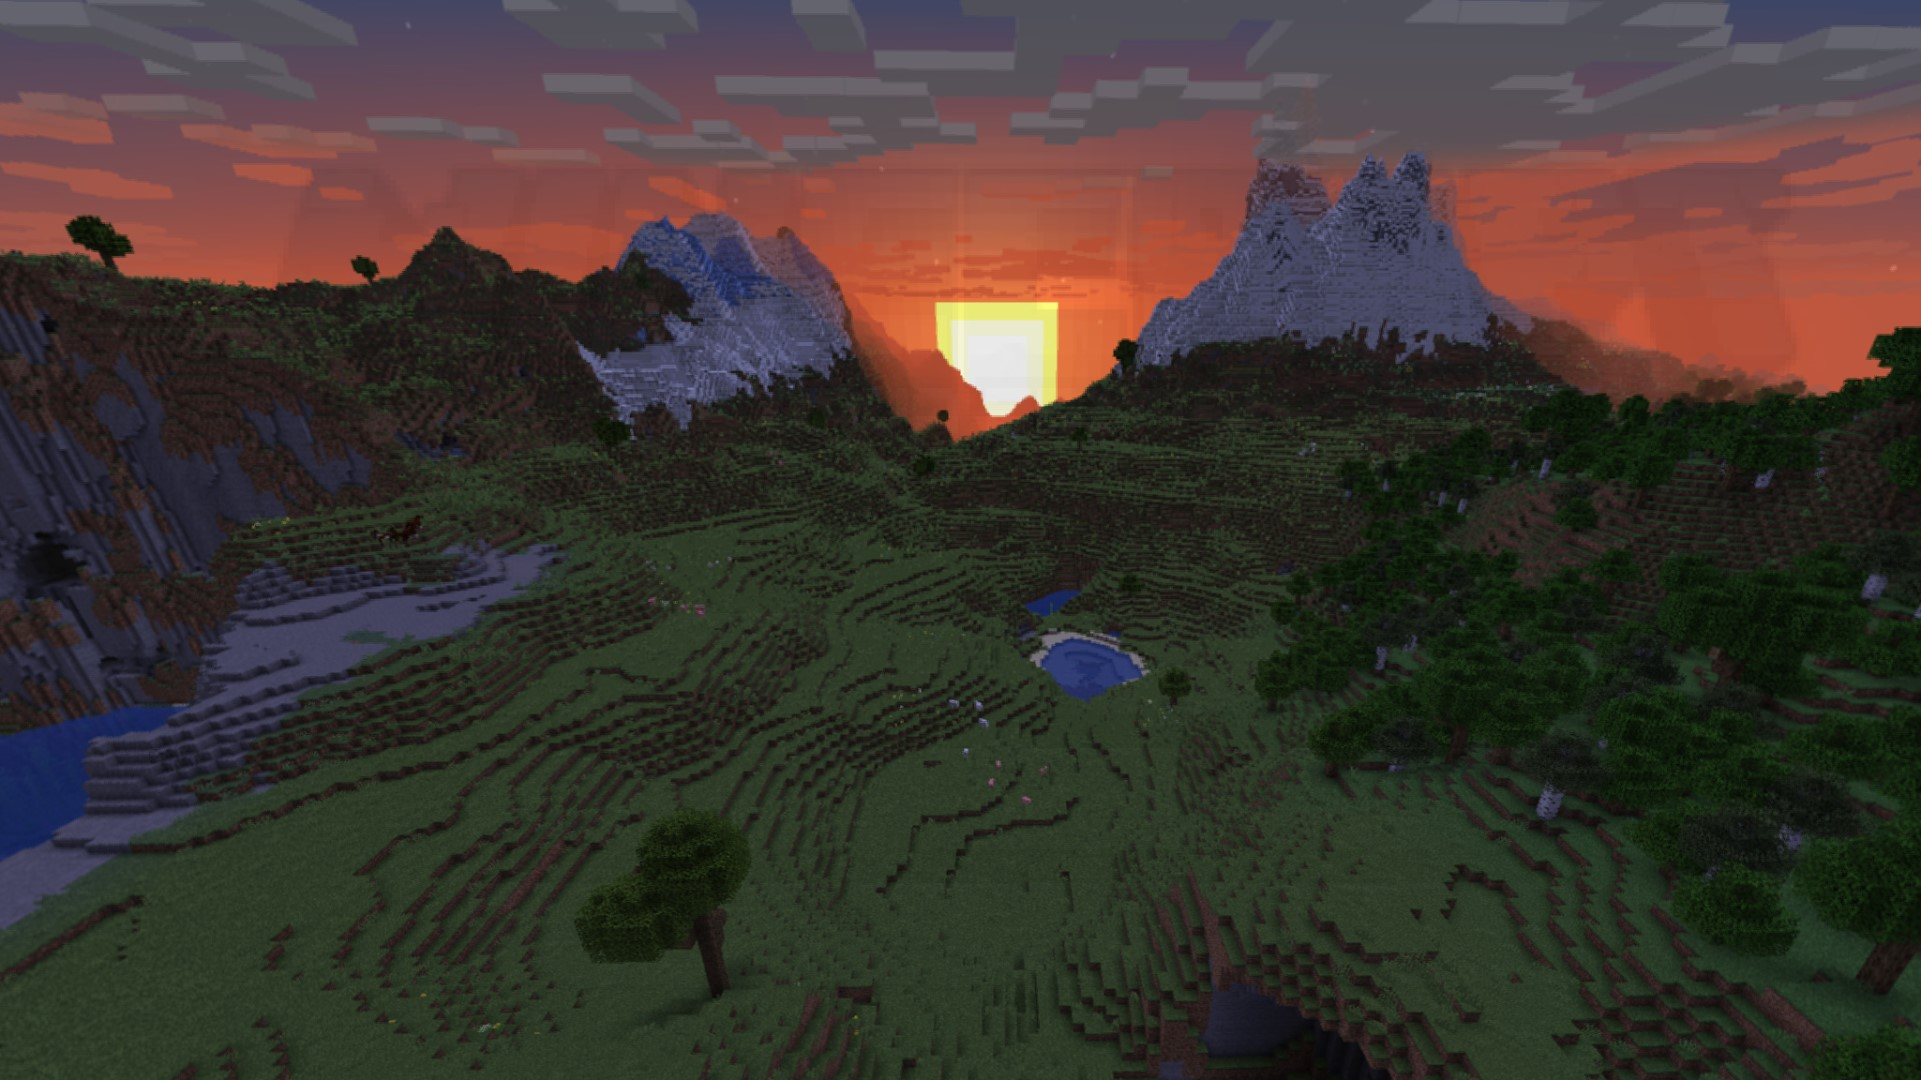 Minecraft's latest snapshot comes with a new cubemap and random number generator